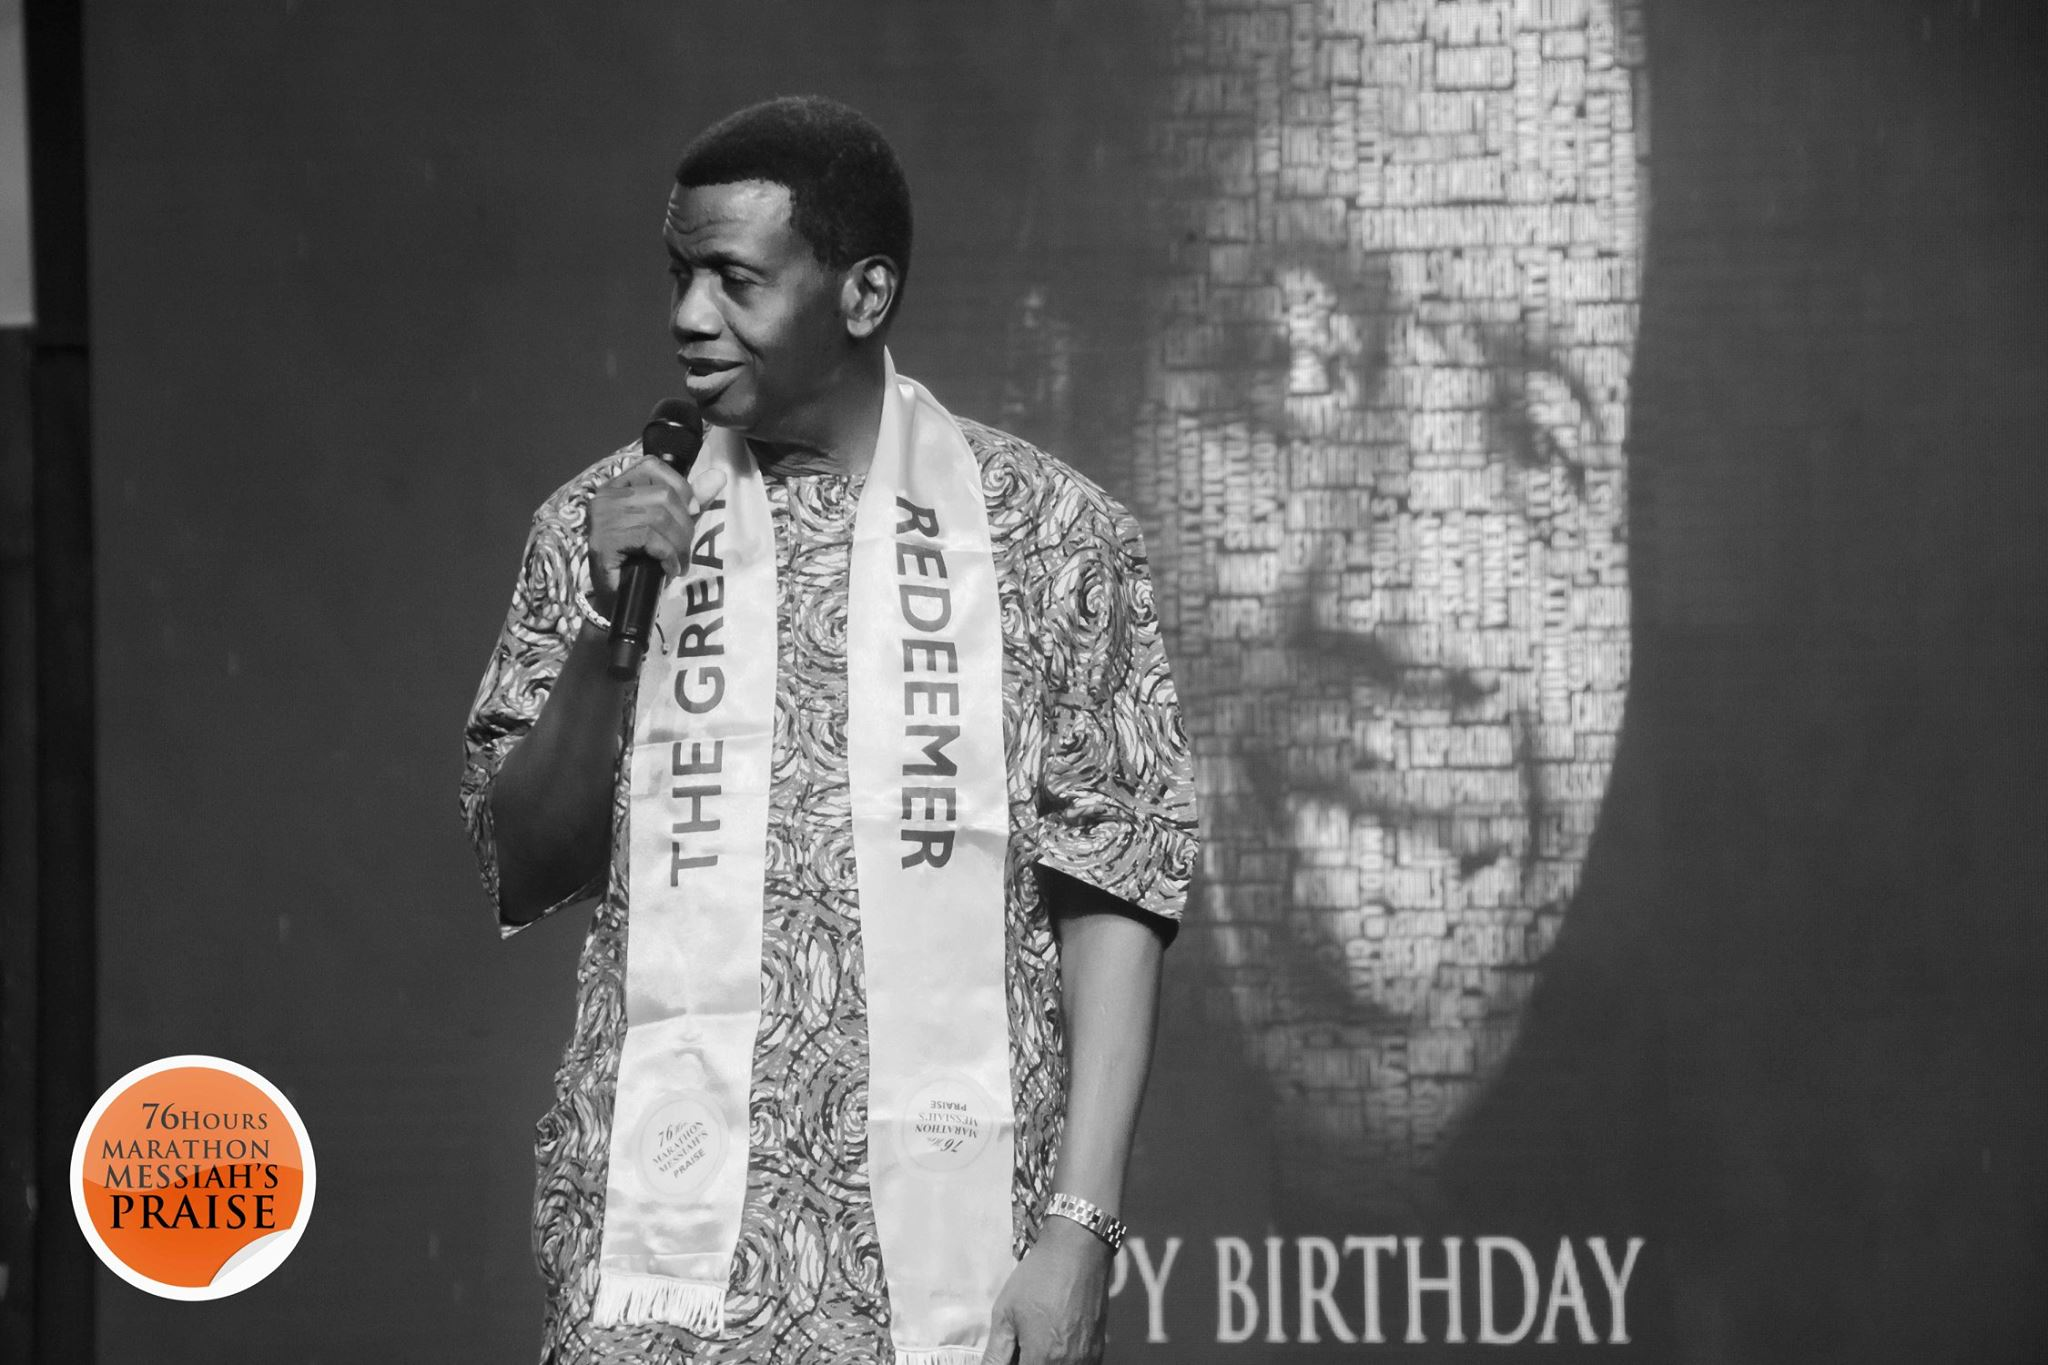 75 Interesting Facts You Should Know About Pastor Enoch Adeboye As